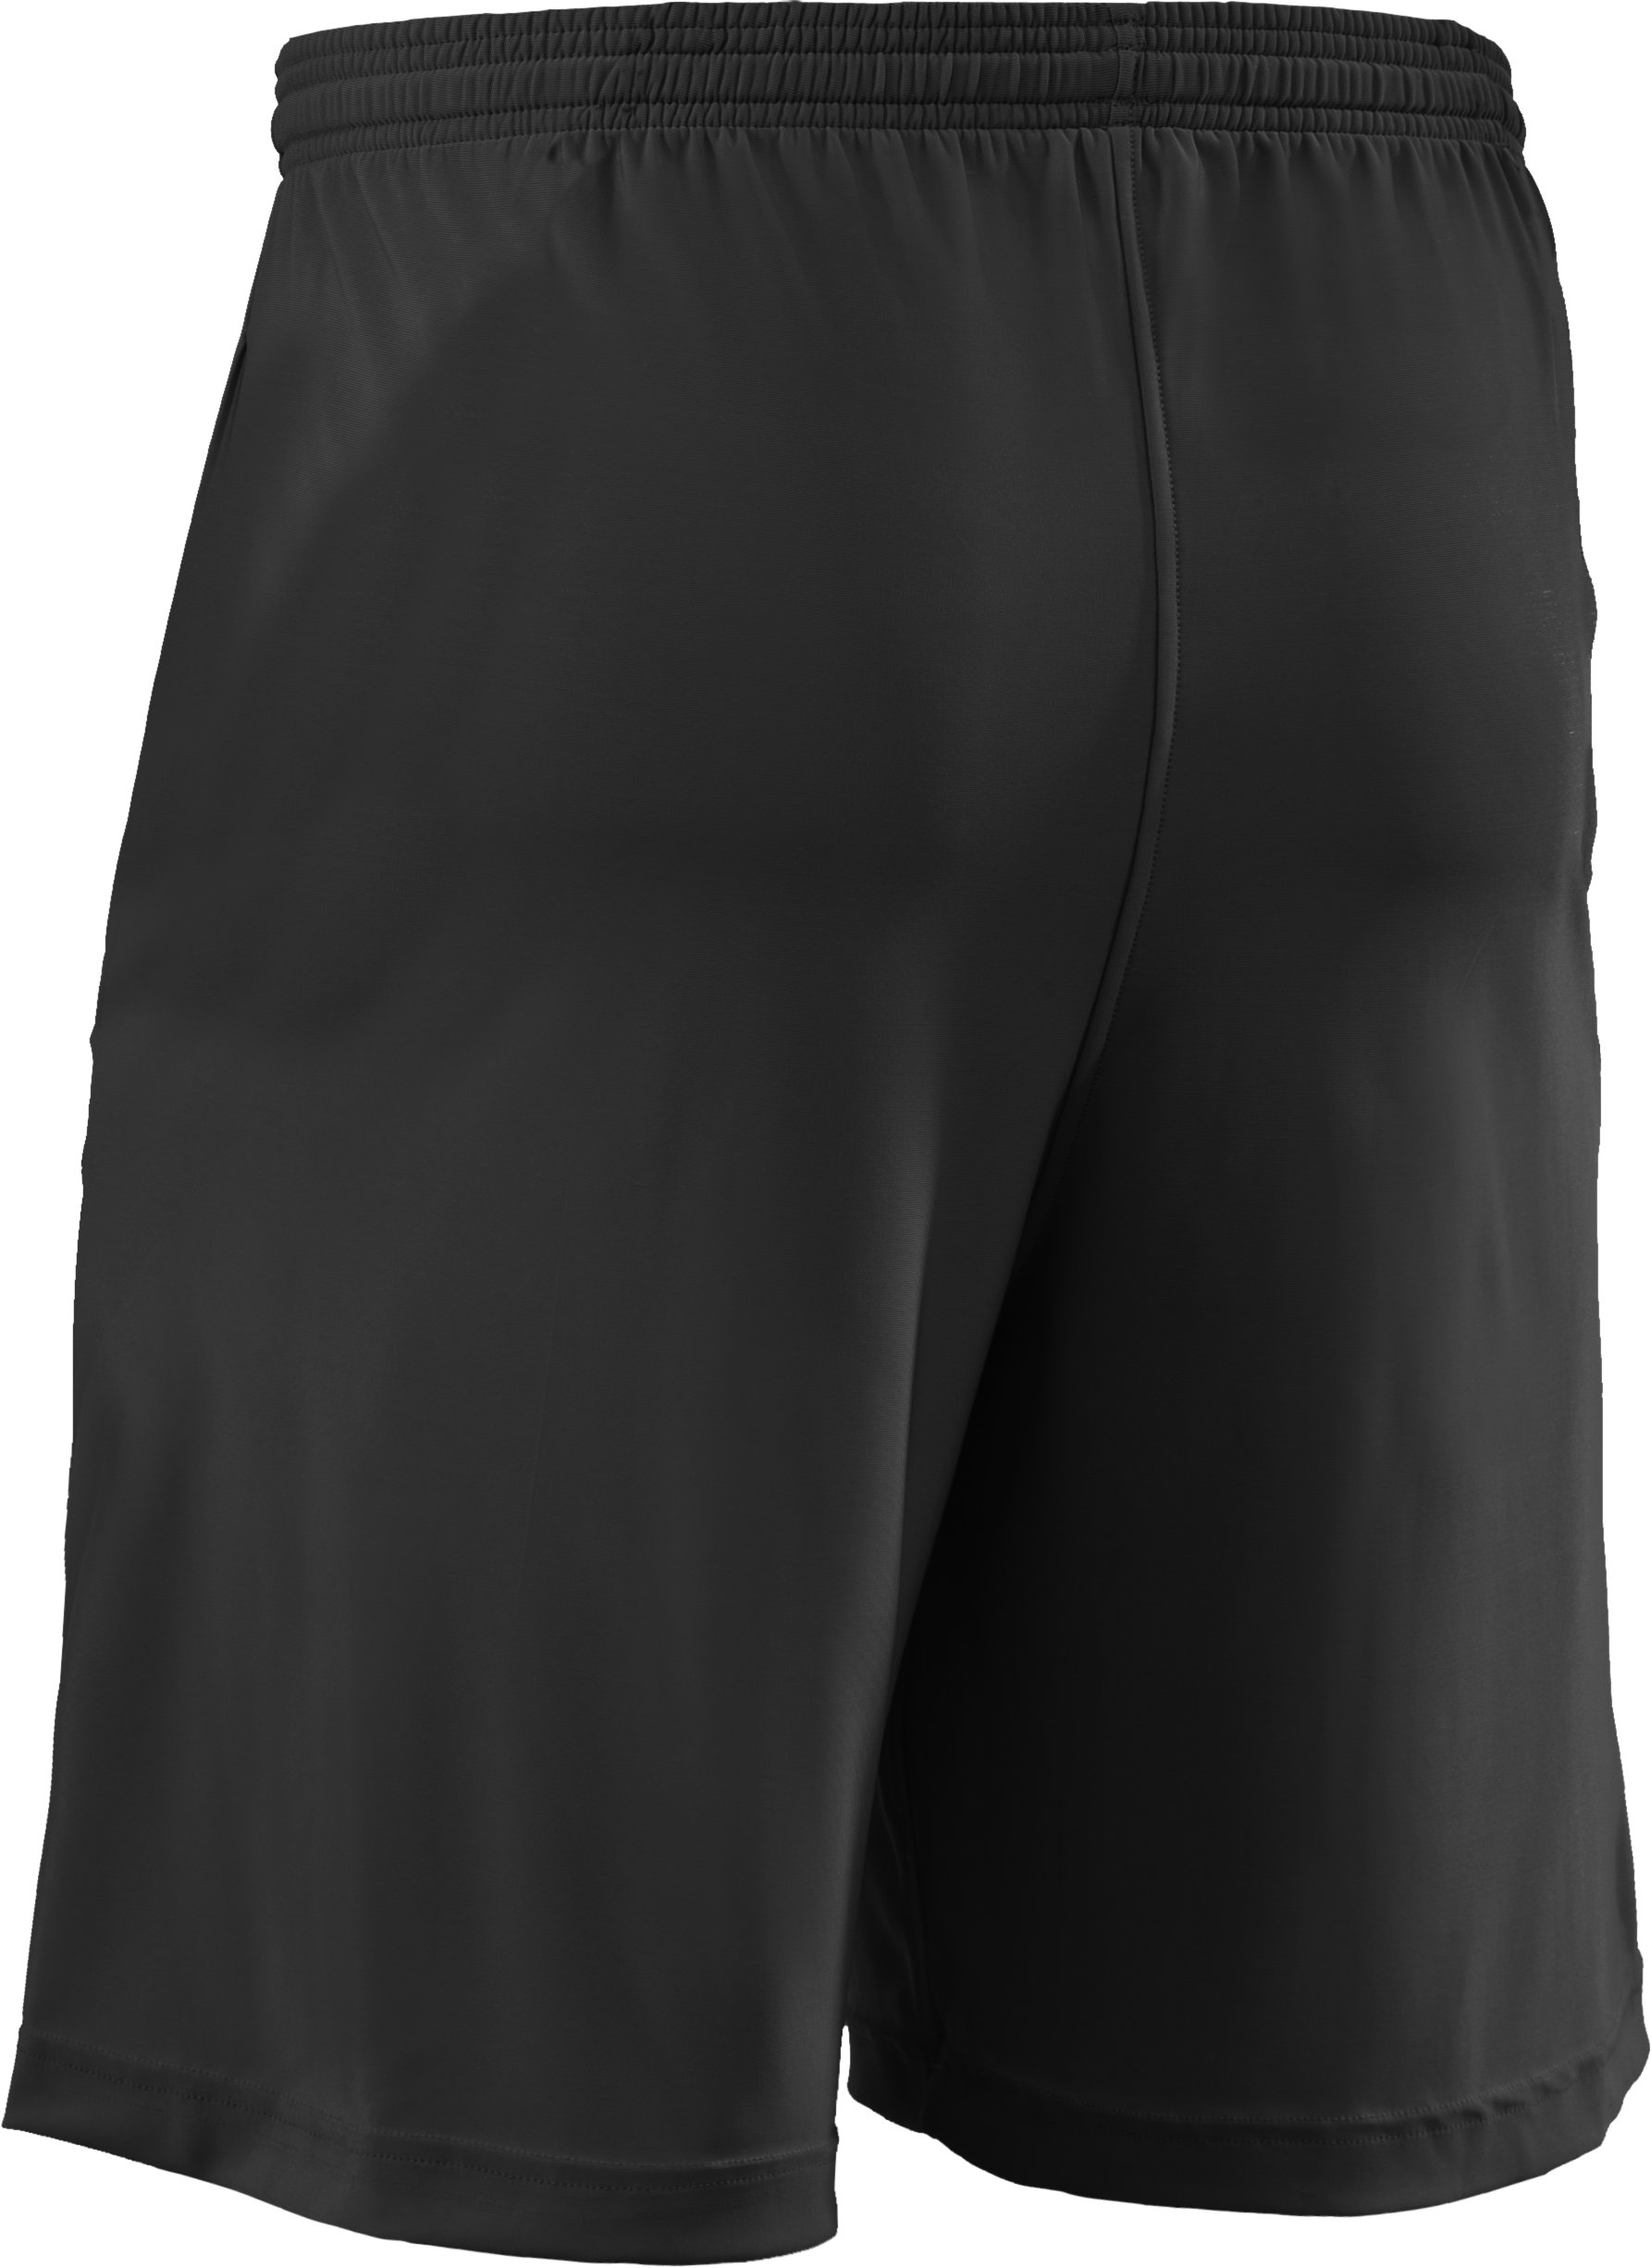 Men's Team Micro Short II, Black